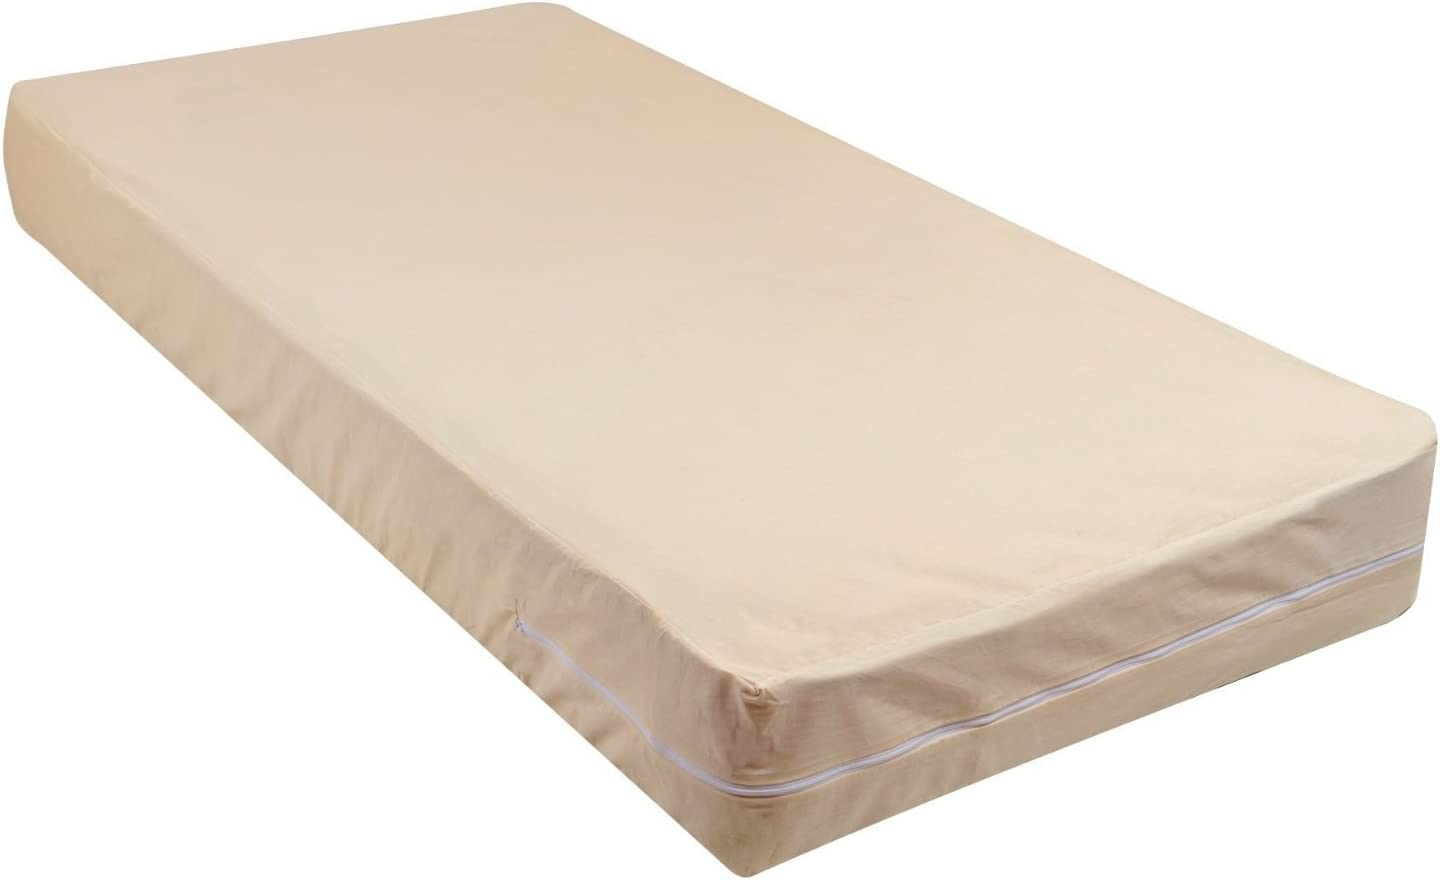 Travel Cot Mattress Quilted Zip off cover 120 x 60 x 7cm UK Mfd Quick Delivery